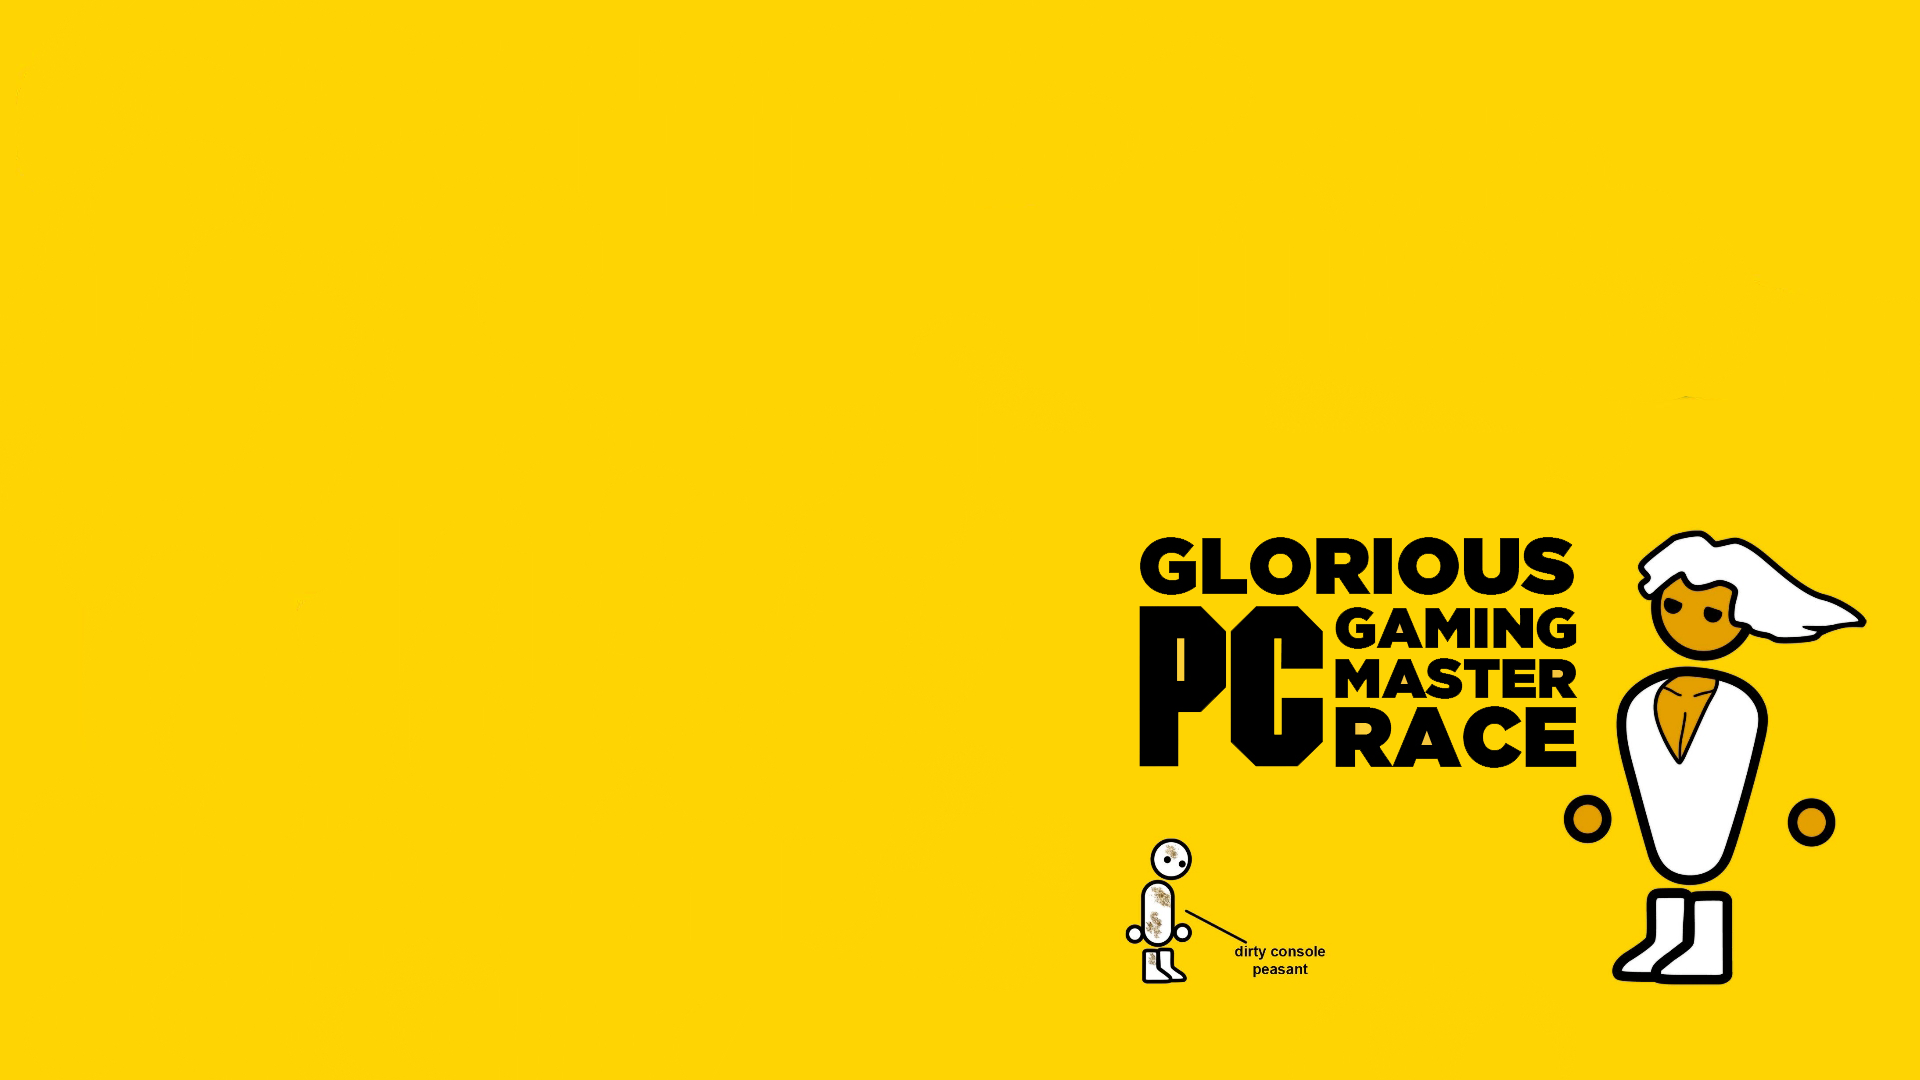 pc master race wallpaper - photo #17